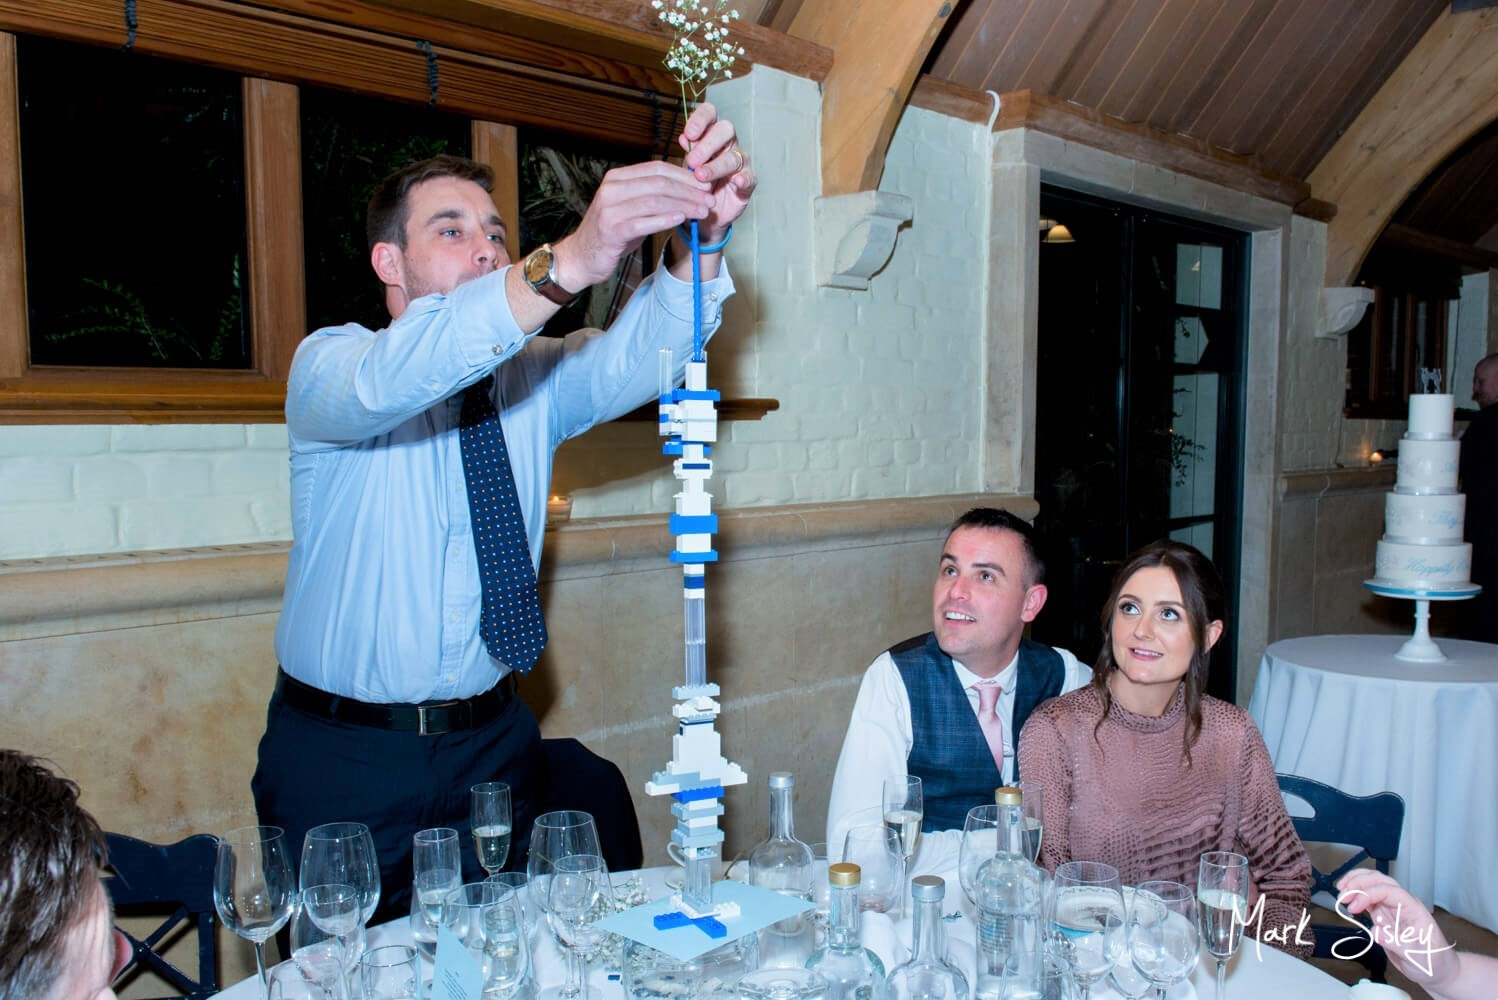 Building a Lego tower at Waddesdon Dairy winter wedding